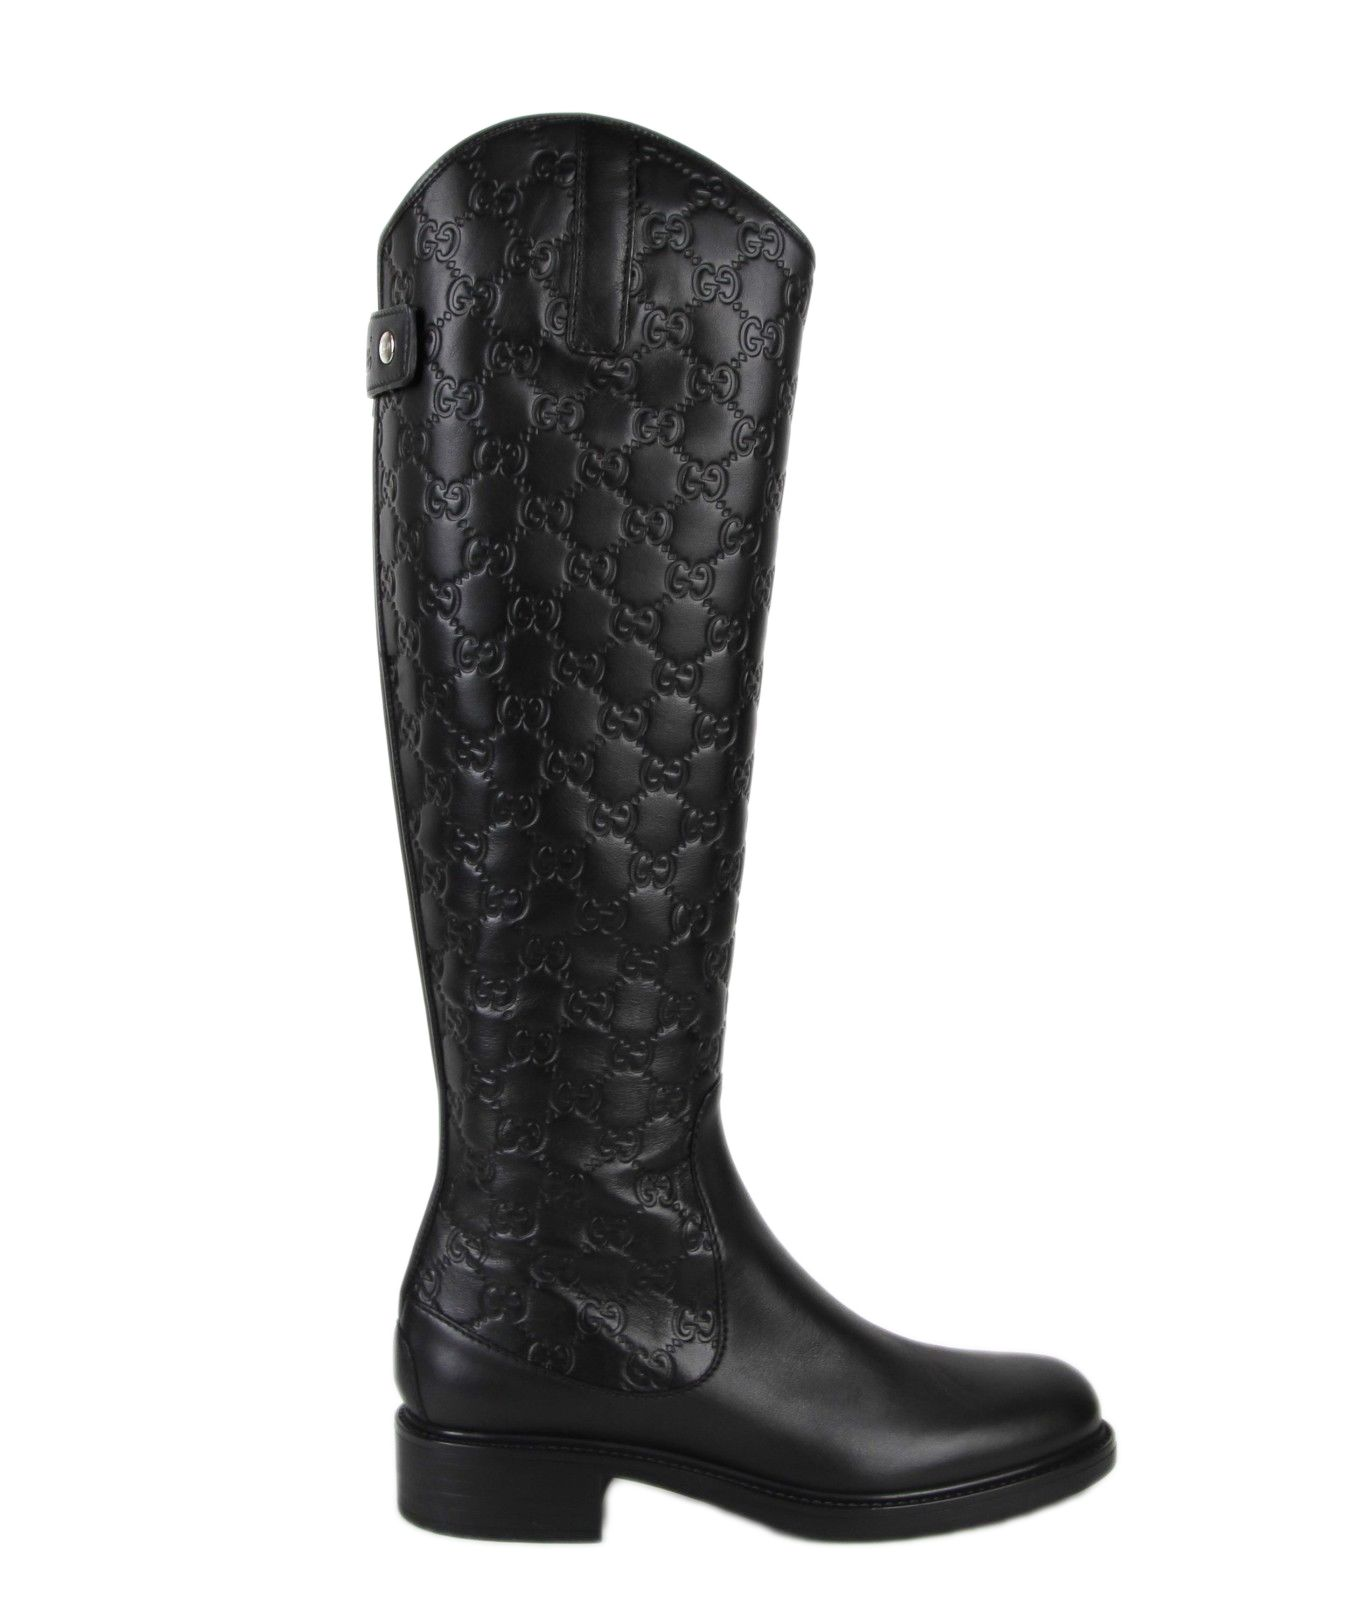 Black Guccissima Leather Riding Boots